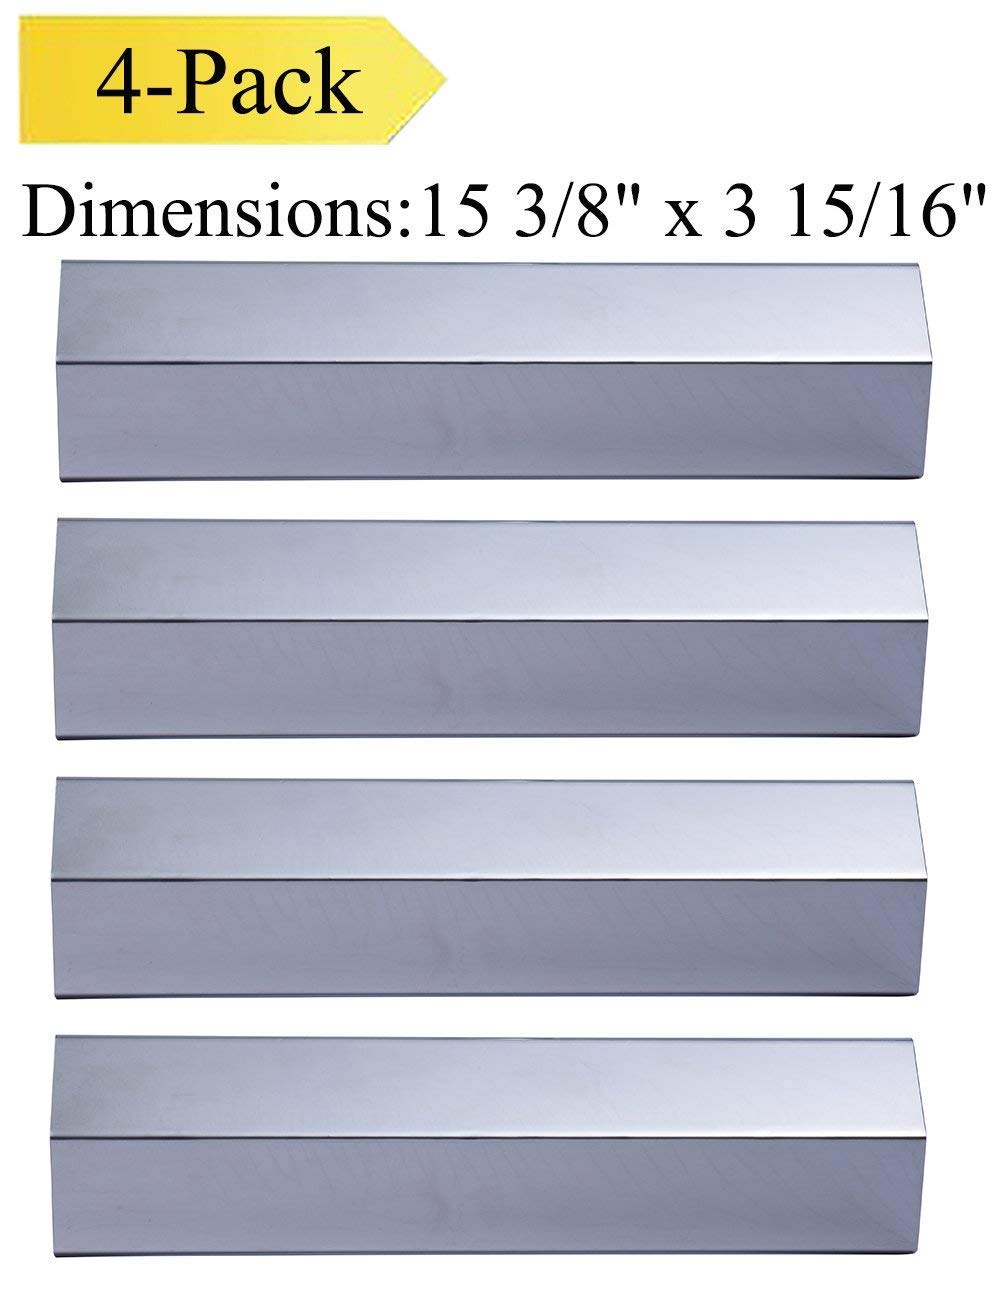 Votenli S9231A(4-Pack) Stainless Steel Heat Plate, Heat Shield for Aussie, Brinkmann, Uniflame, Charmglow, Grill King, Lowes Model Grills by Votenli